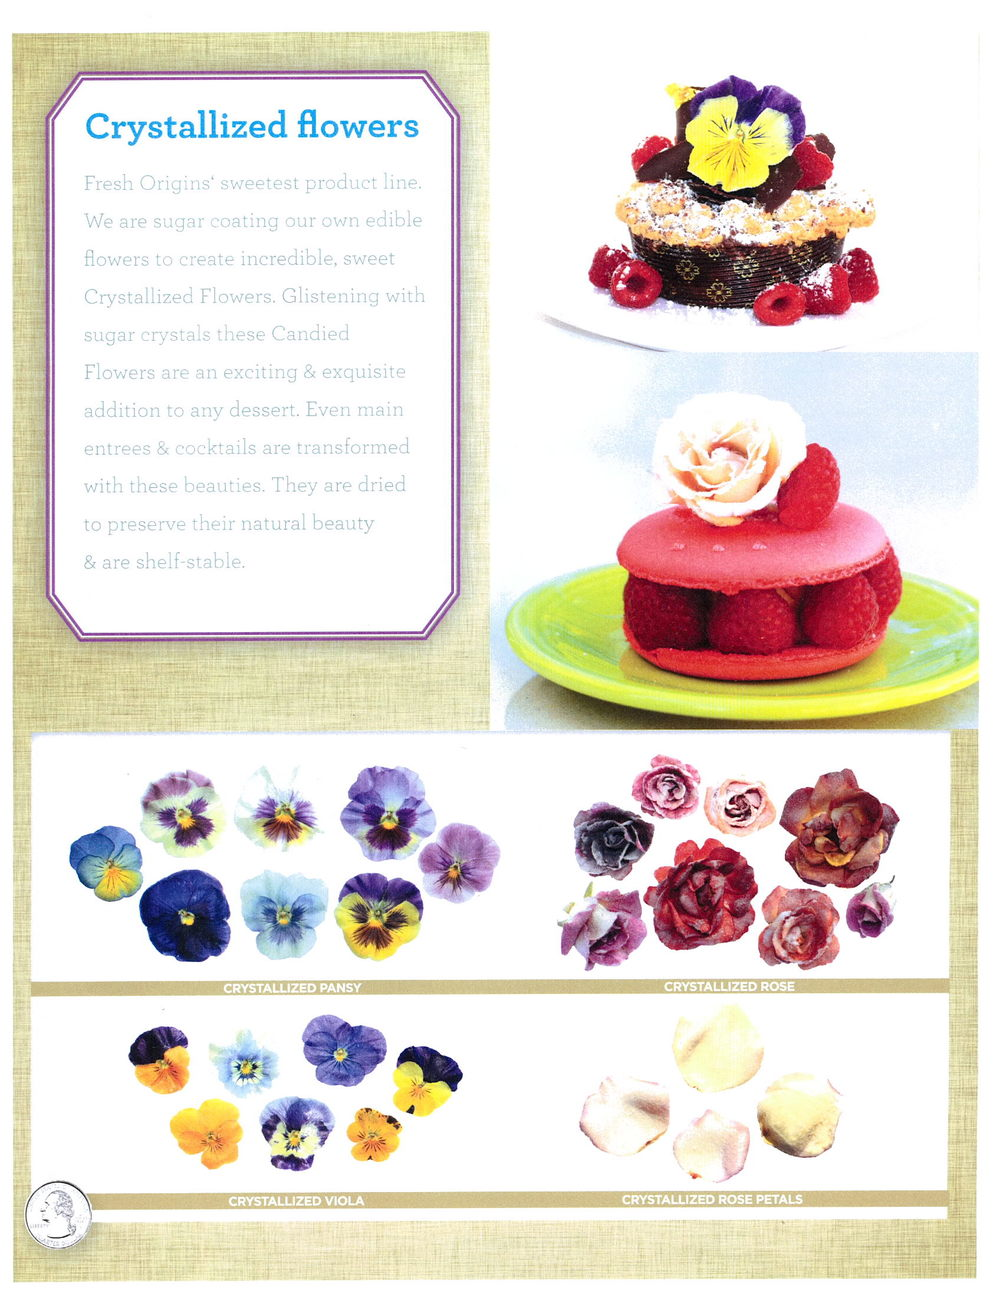 edible flowers_Page_5.jpg